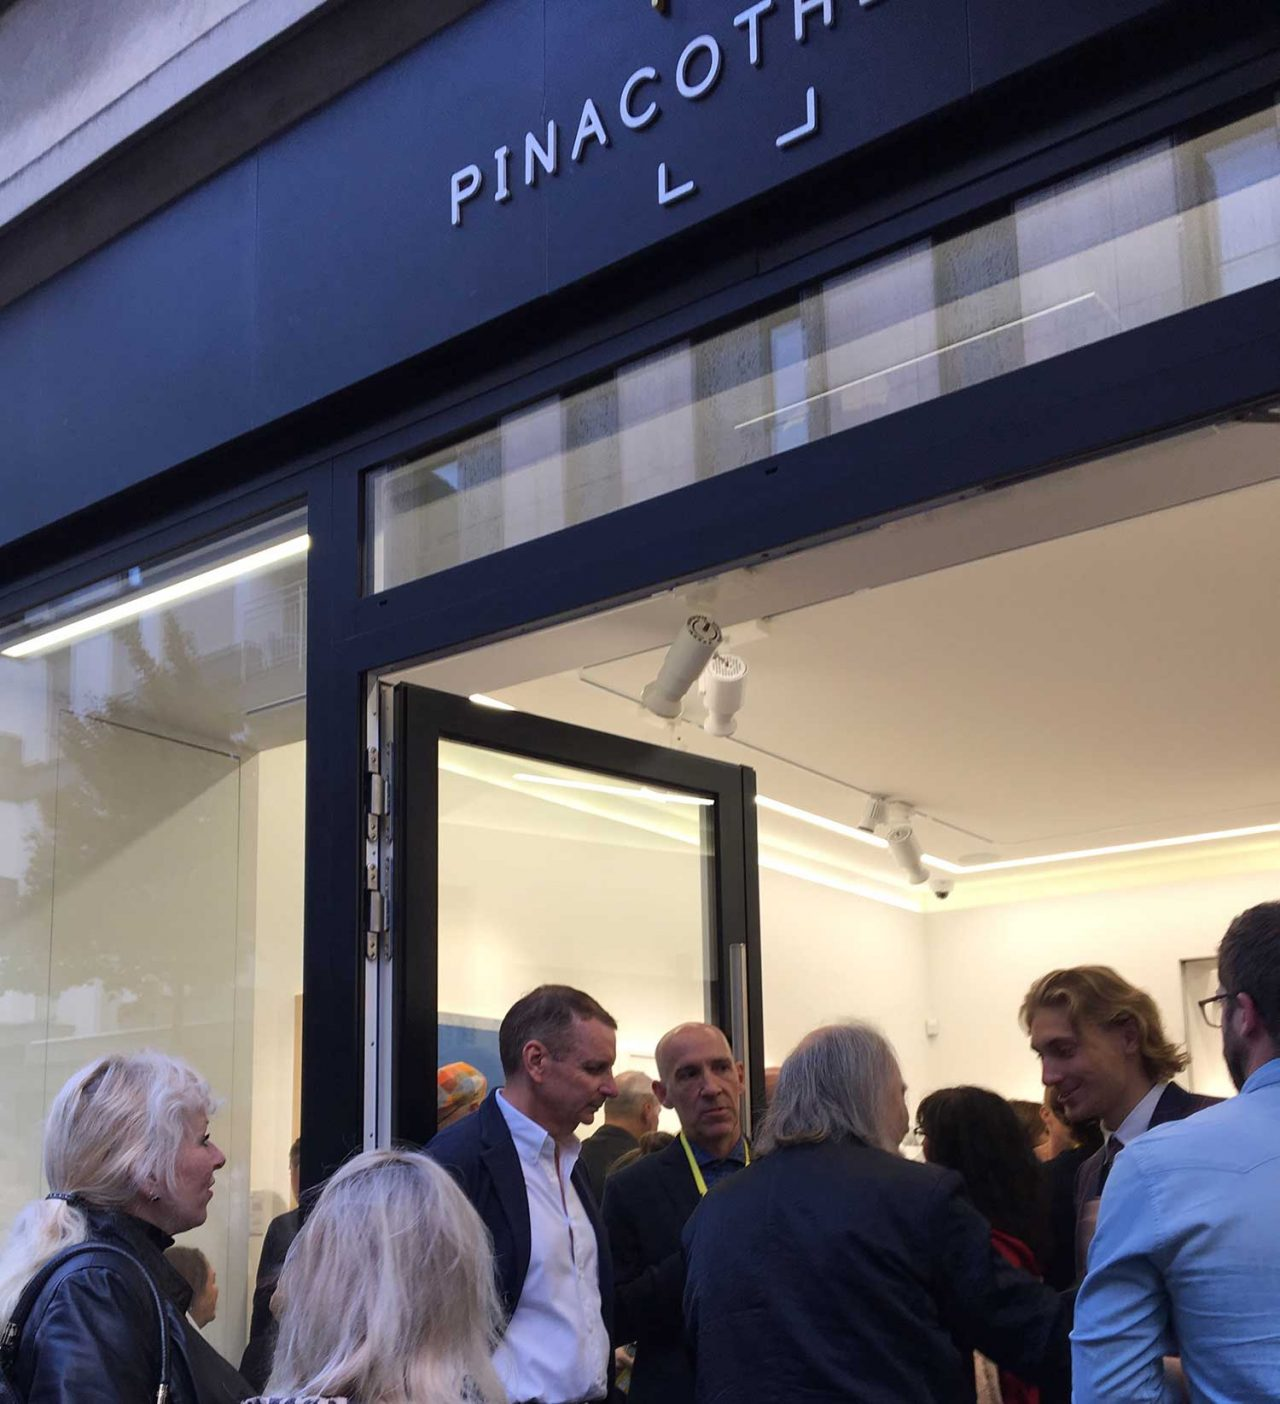 The exhibition opening at La Pinacotheque was packed